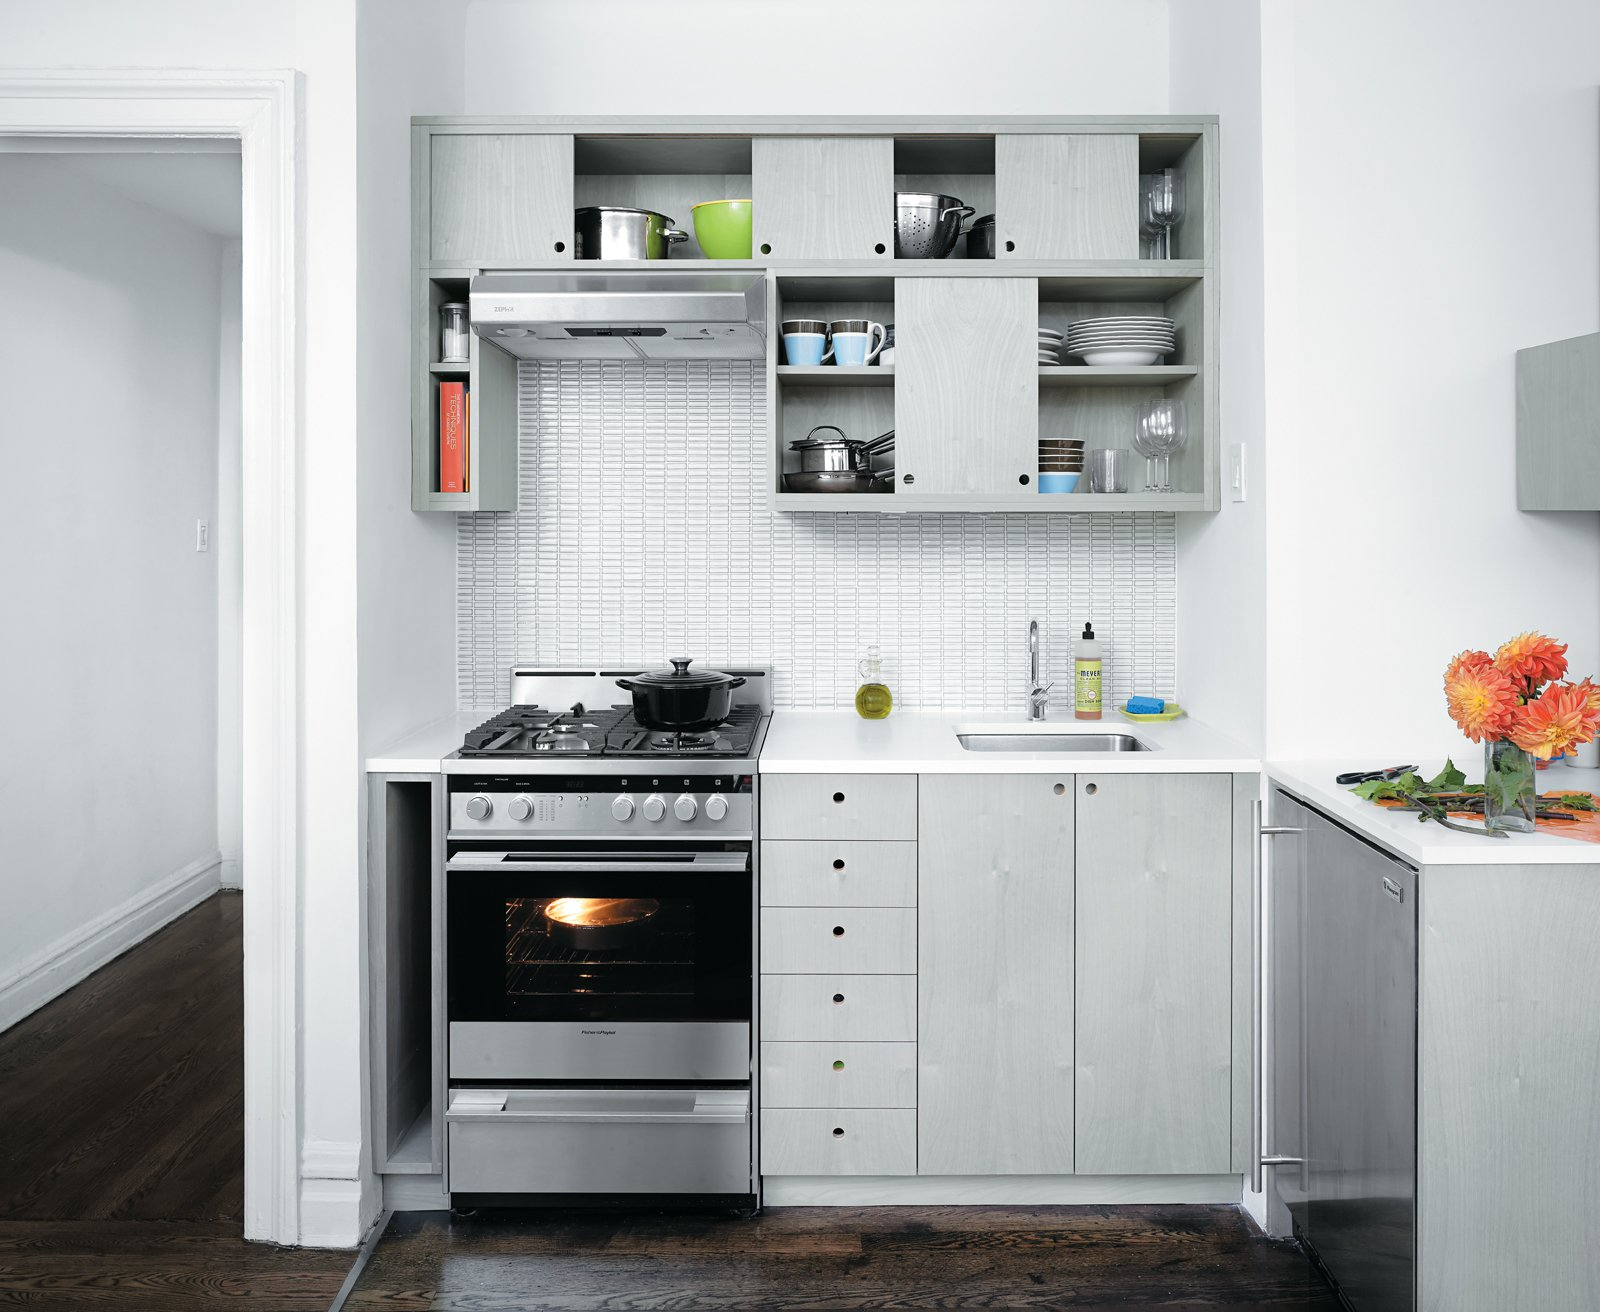 Choosing tile for the kitchen backsplash was the biggest struggle of the project, according to Brechbuehler. They settled on light gray horizontal bars by Ann Sacks.  Solutions For Tiny Kitchens by Aileen Kwun from A Clean Slate